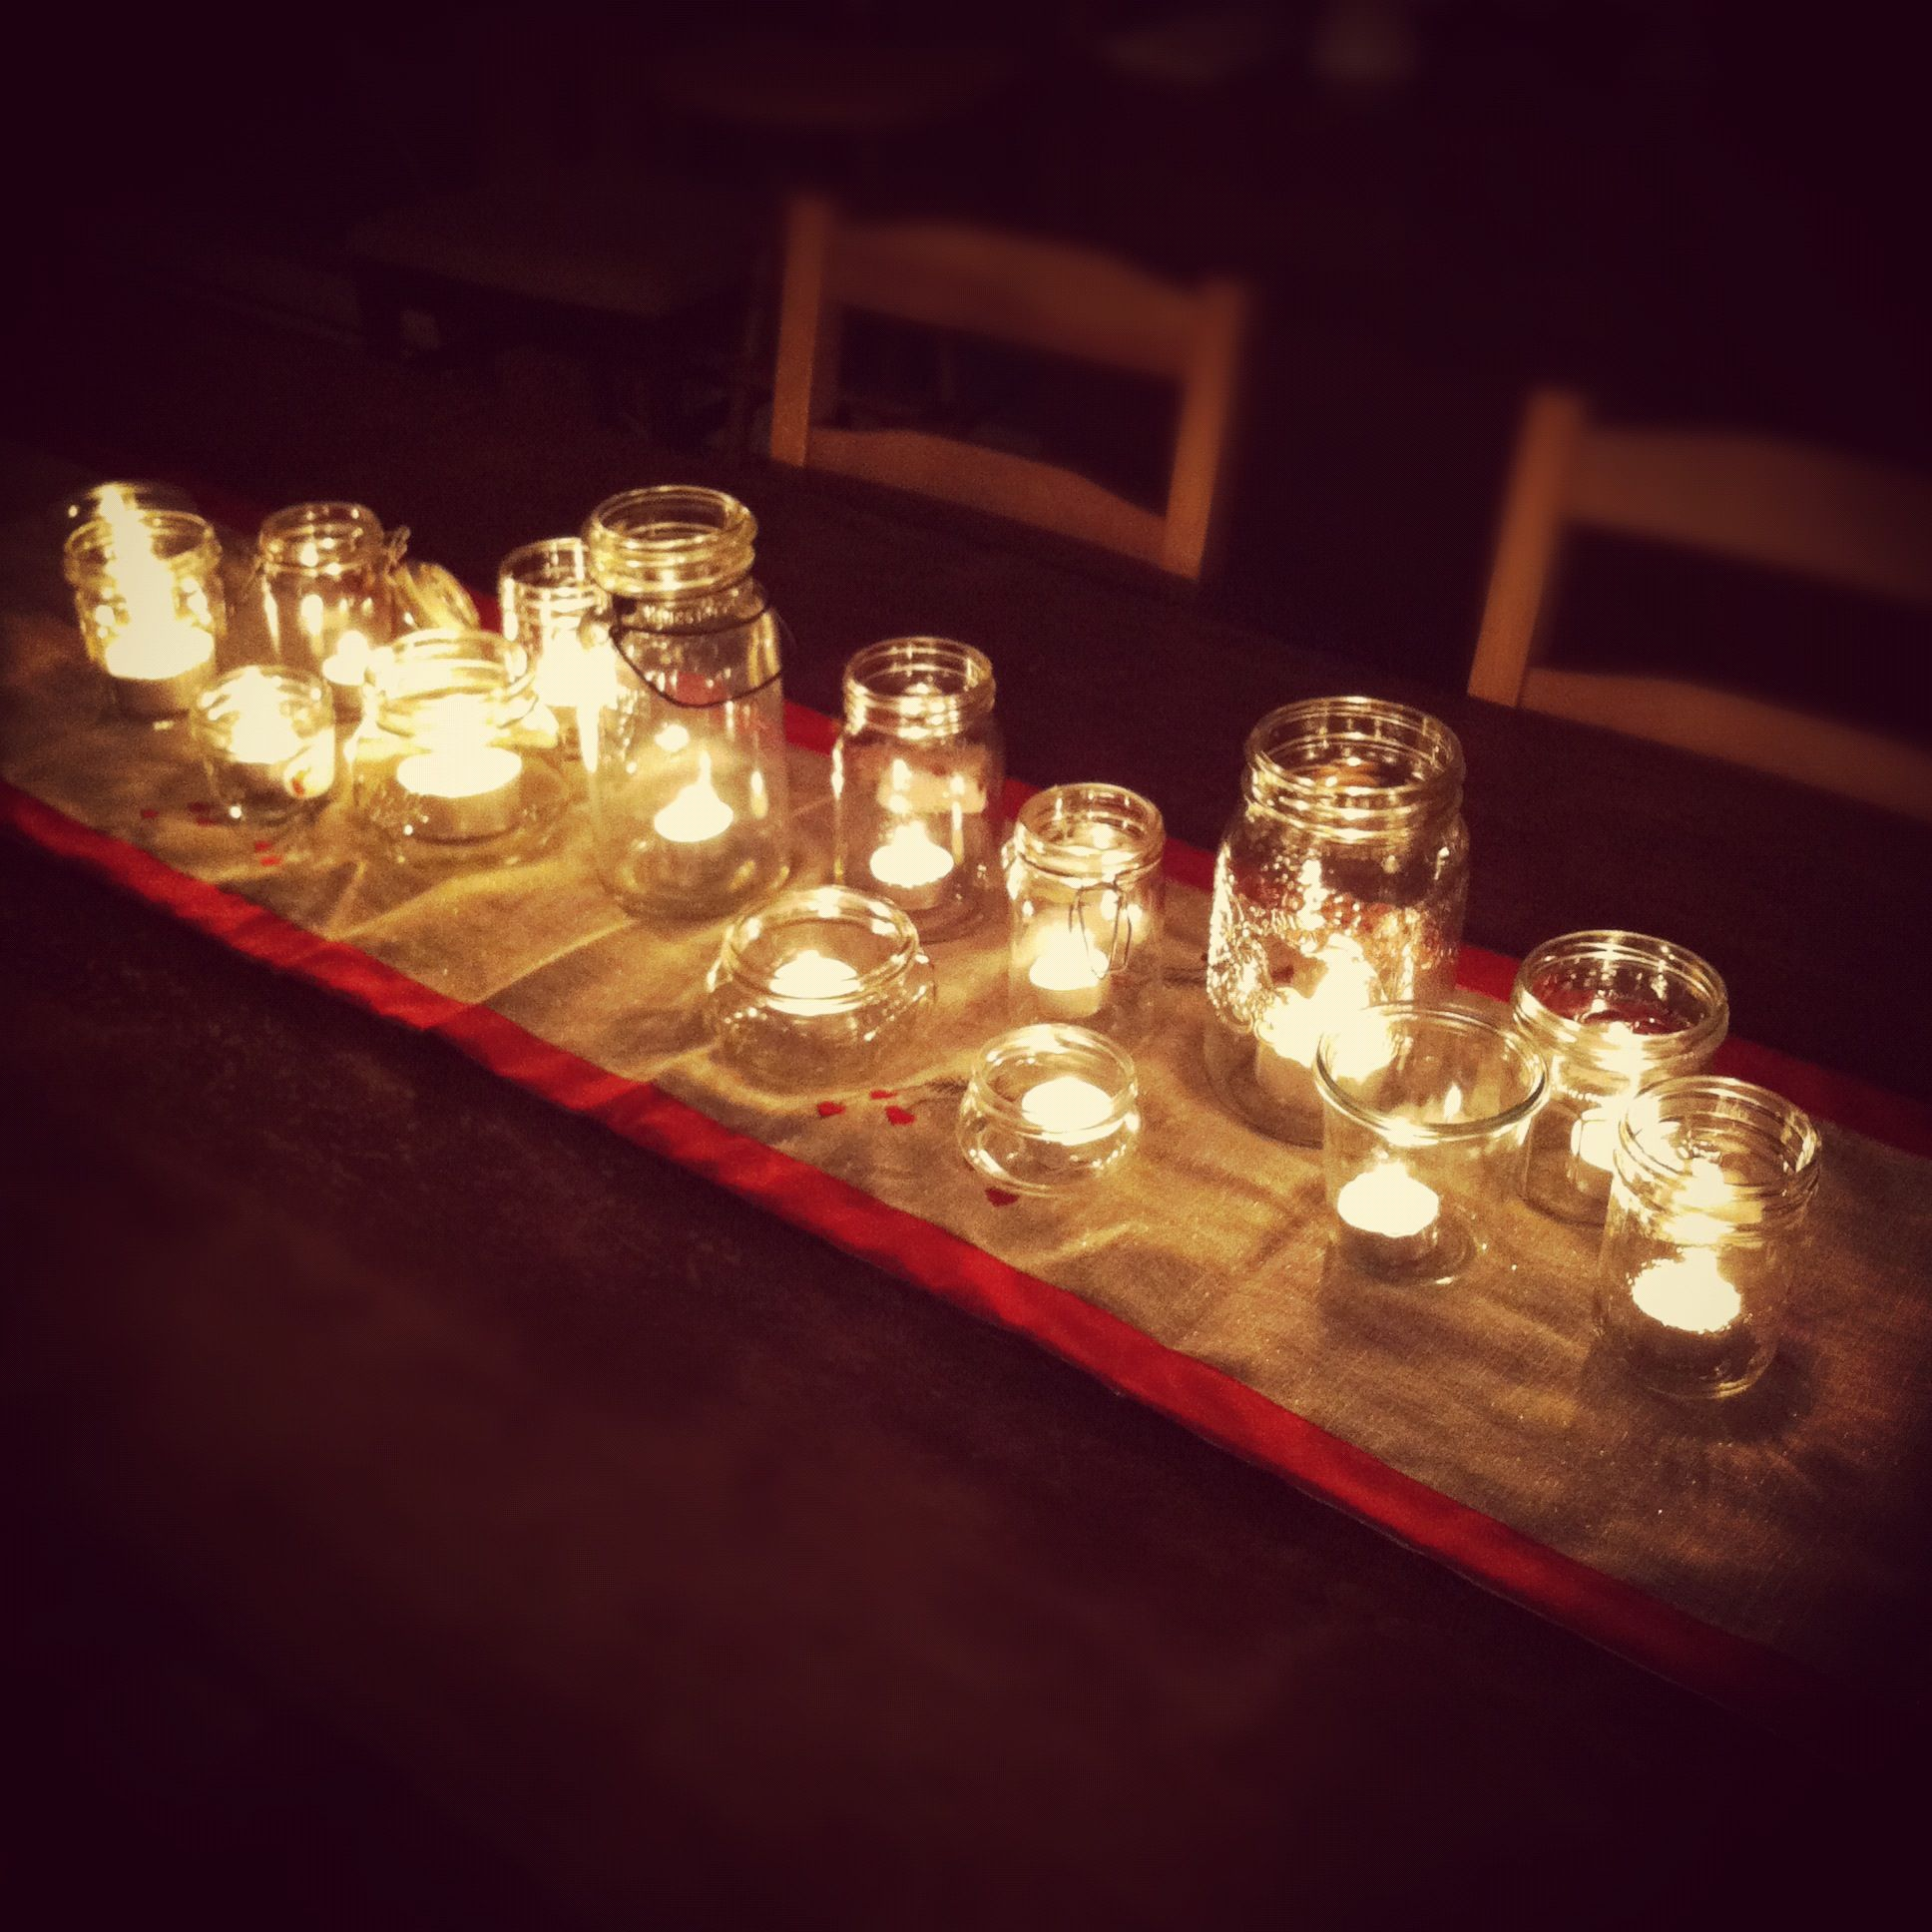 From The Kitchen A Simple Centerpiece Of Tea Lights In Jam Jars